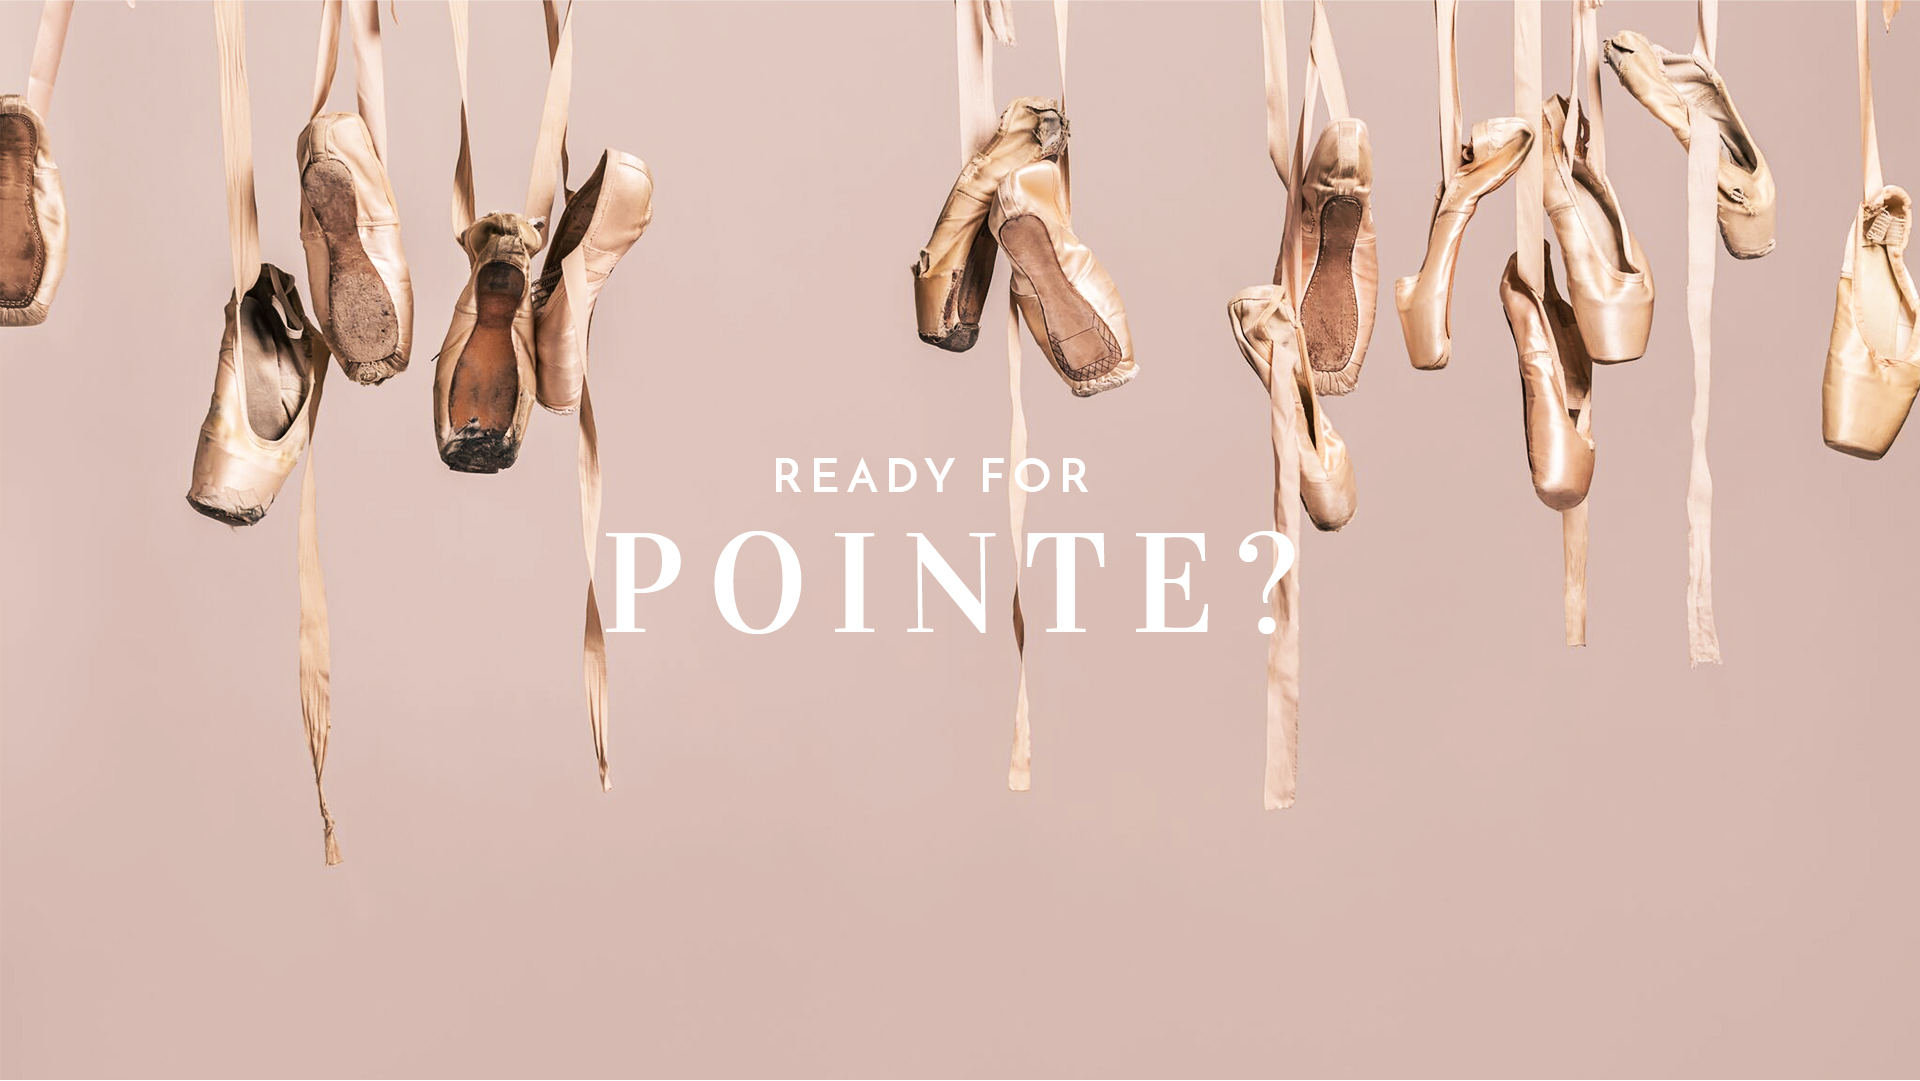 Ready for Pointe